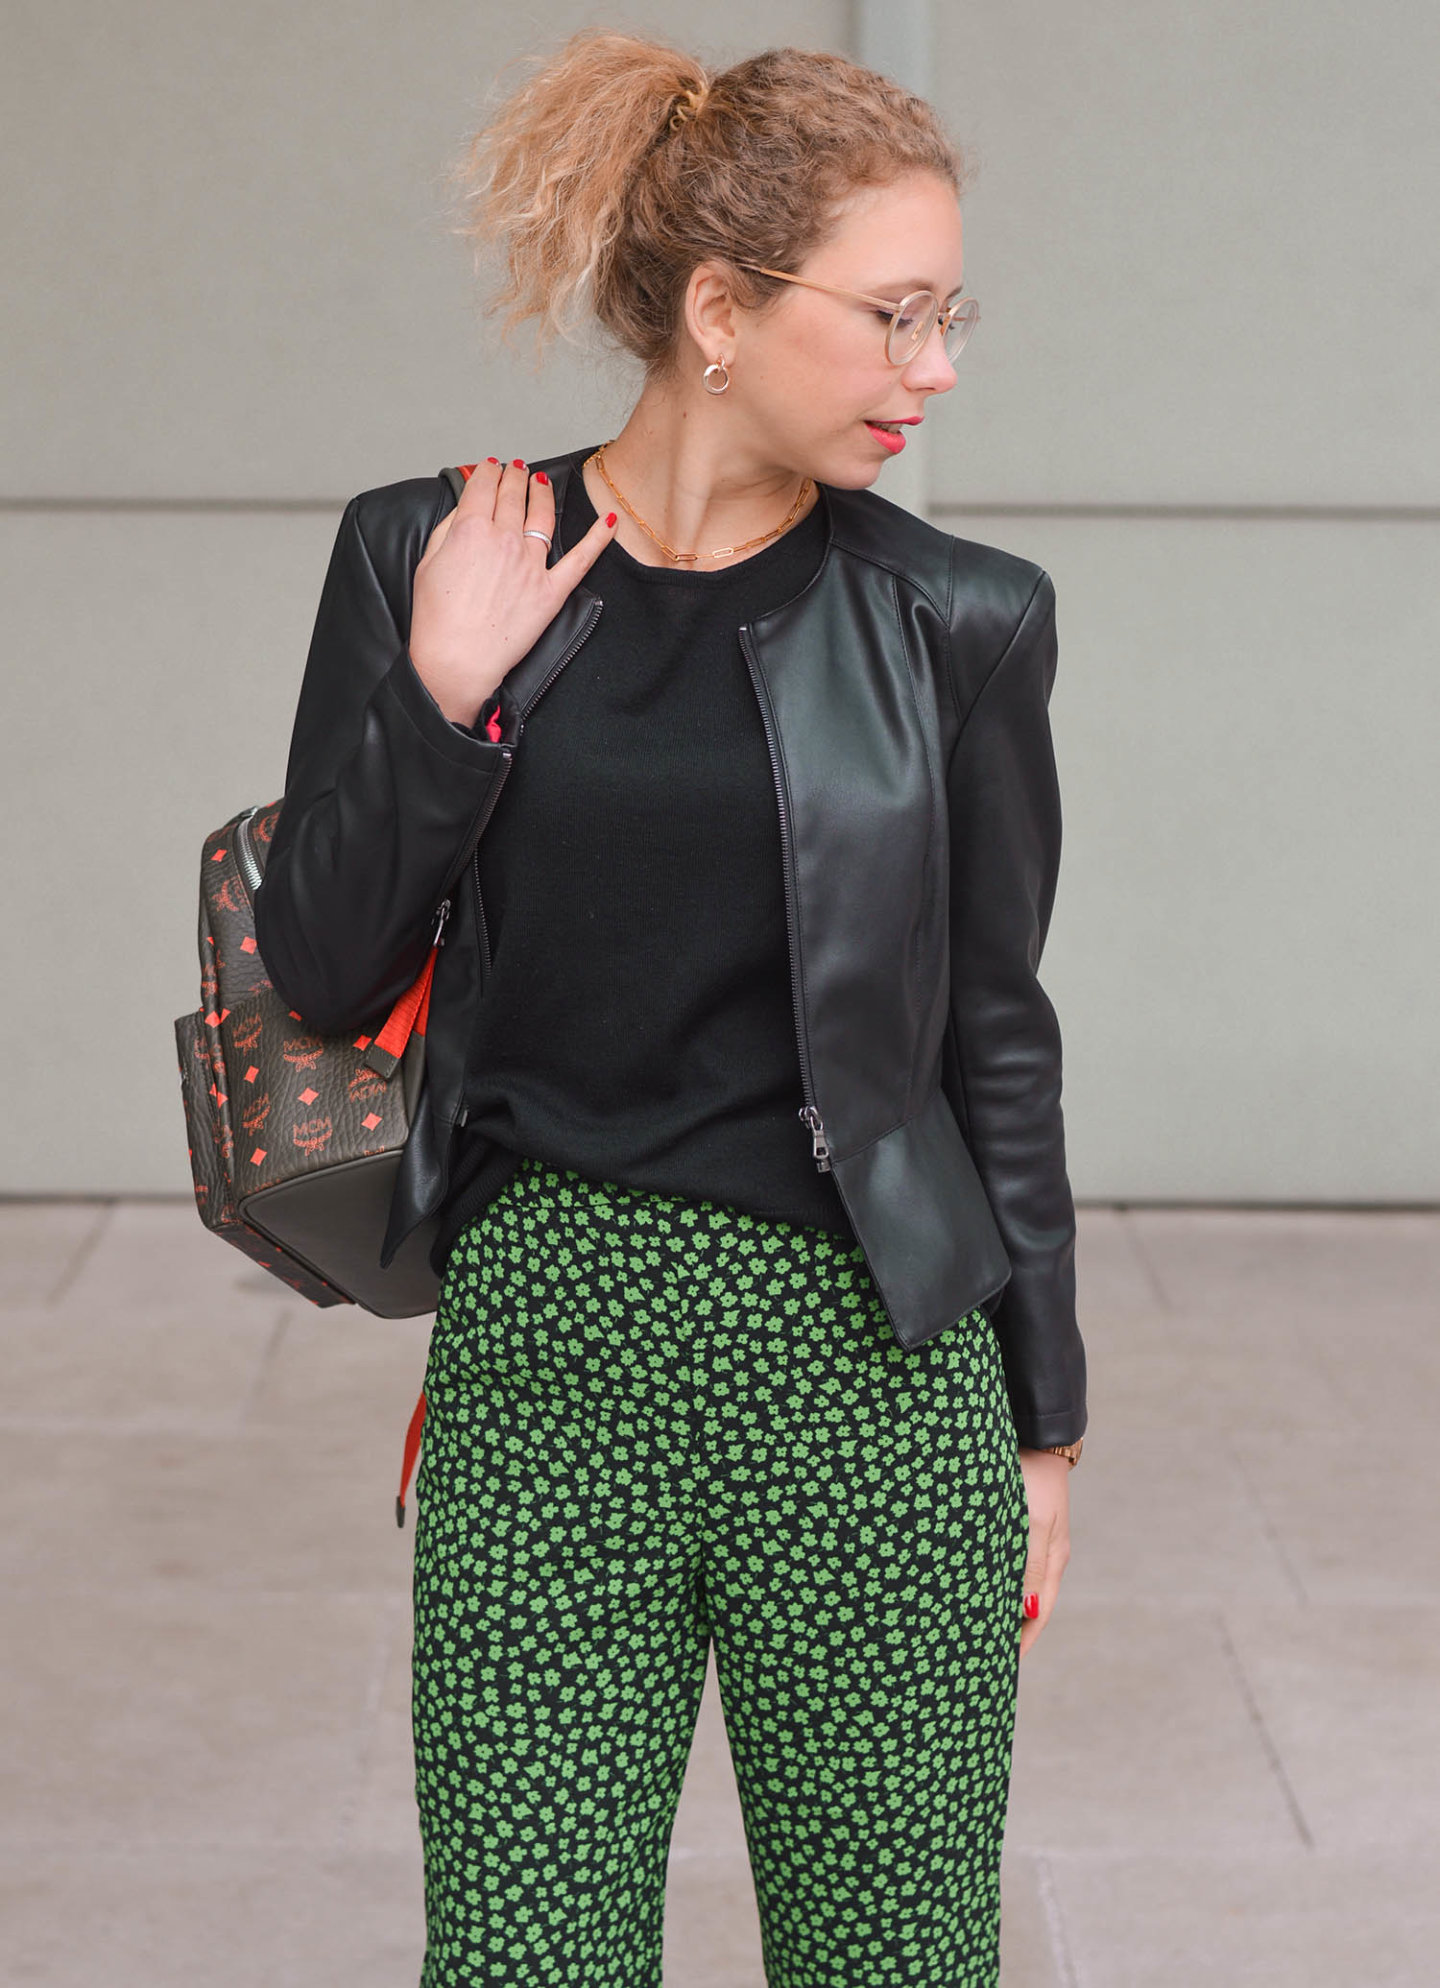 mustermix outfit mit mcm rucksack